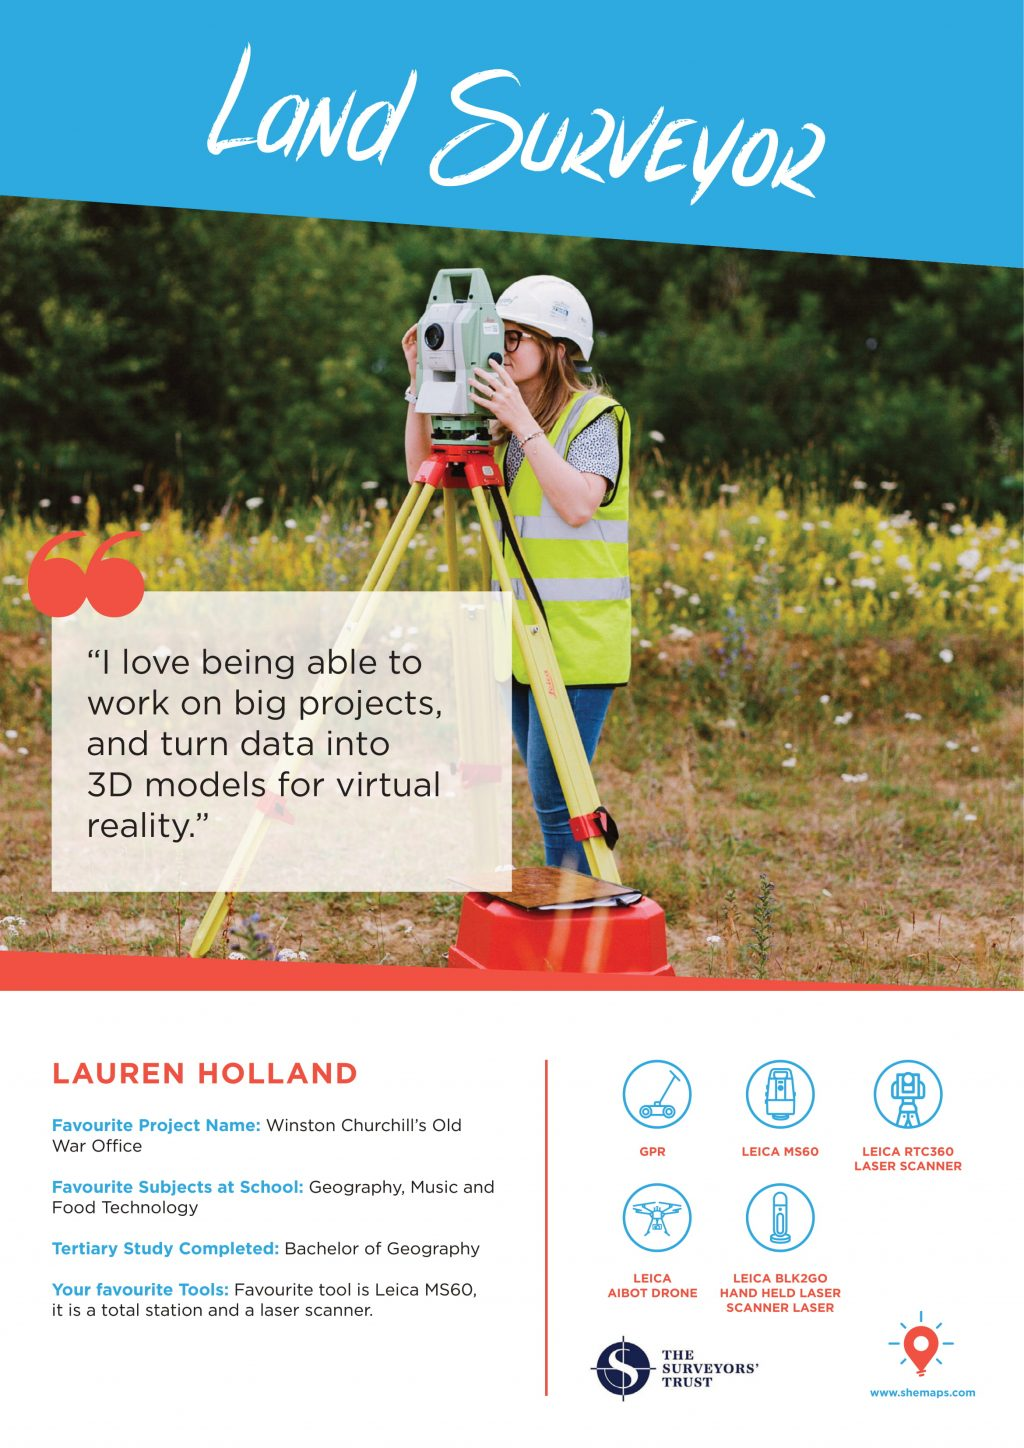 a poster showing land surveyor Lauren Holland and information about her work